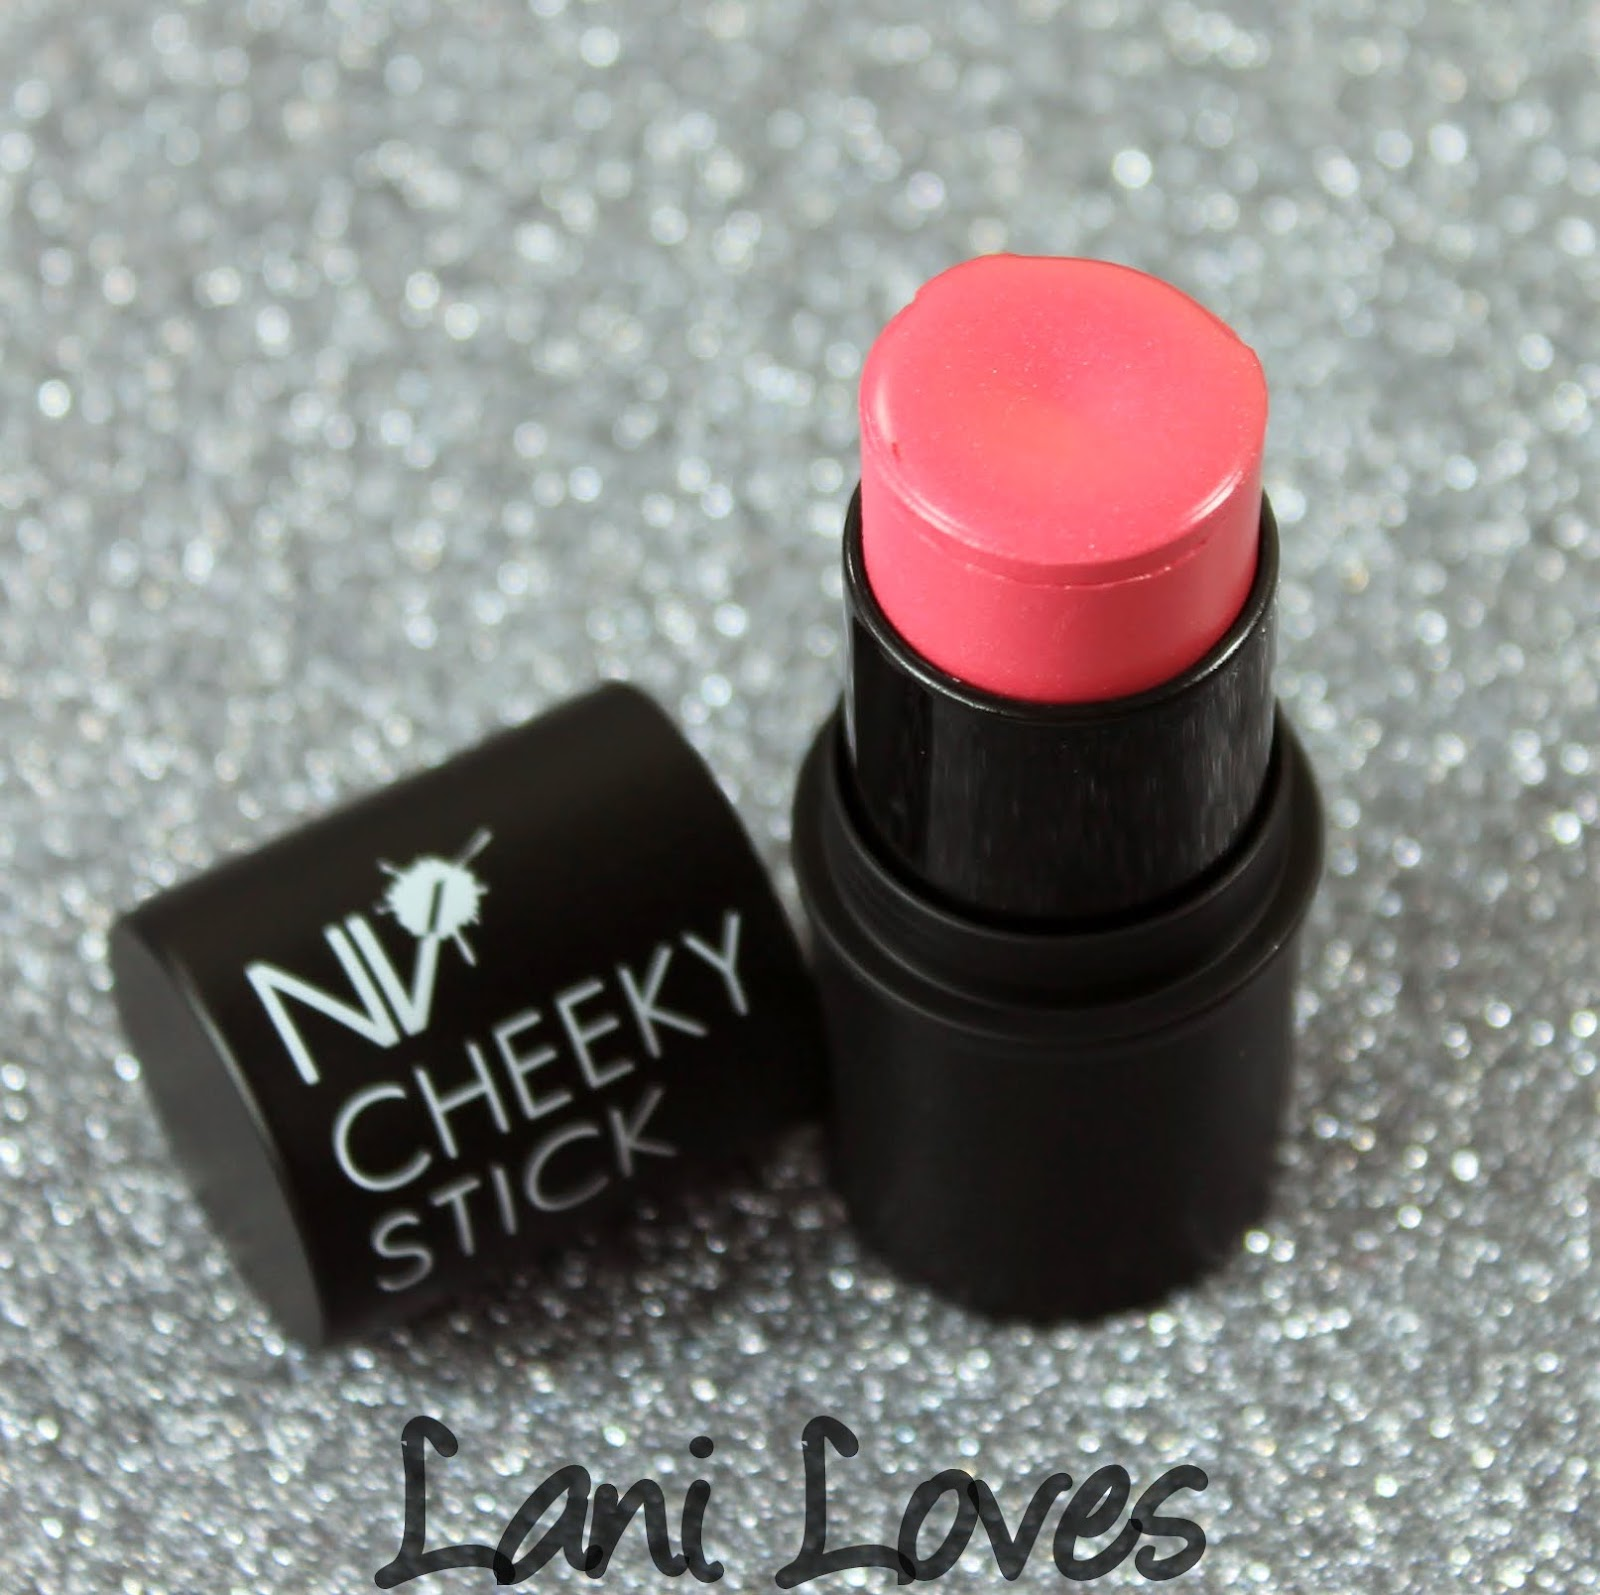 NV Colour Cheeky Stick - Chilli Chops Swatches & Review